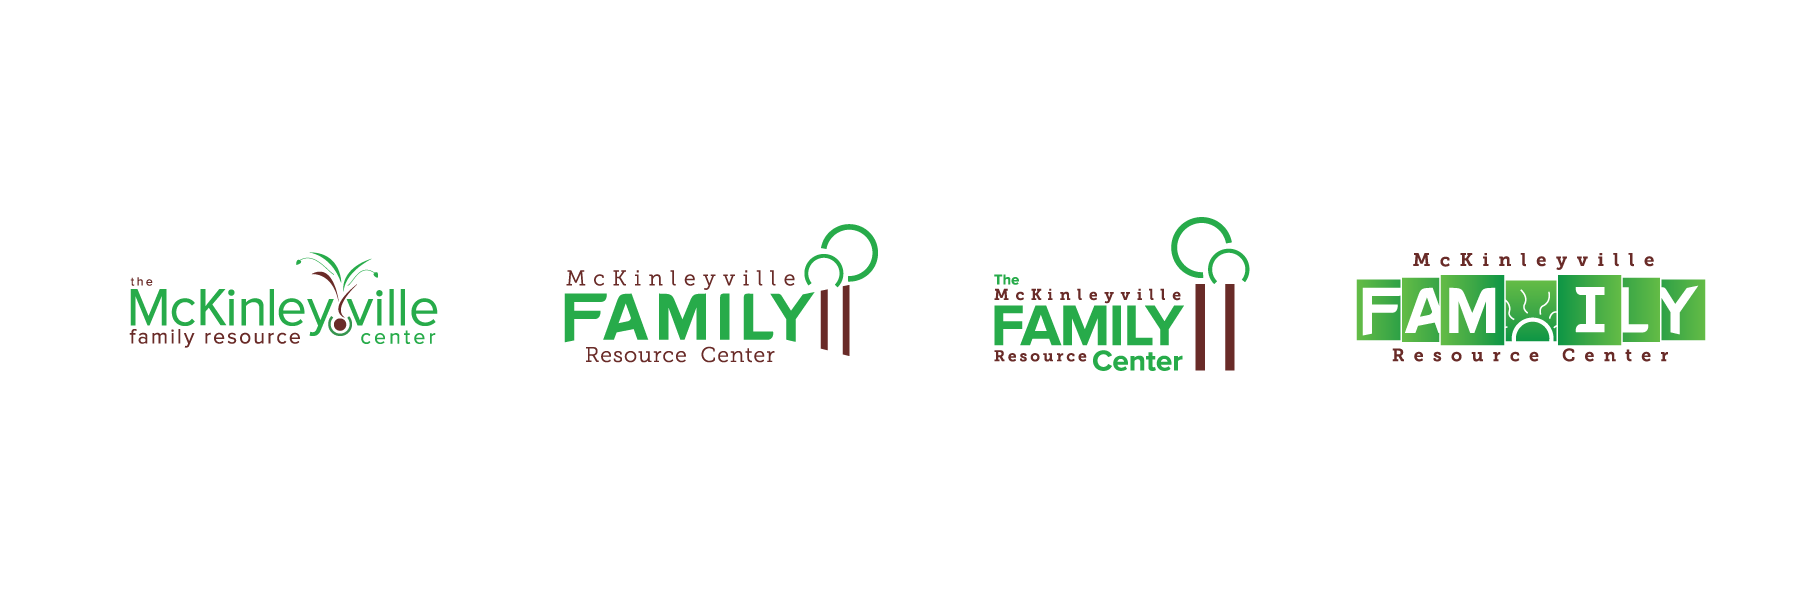 Logo drafts for McKinleyville Family Resource Center